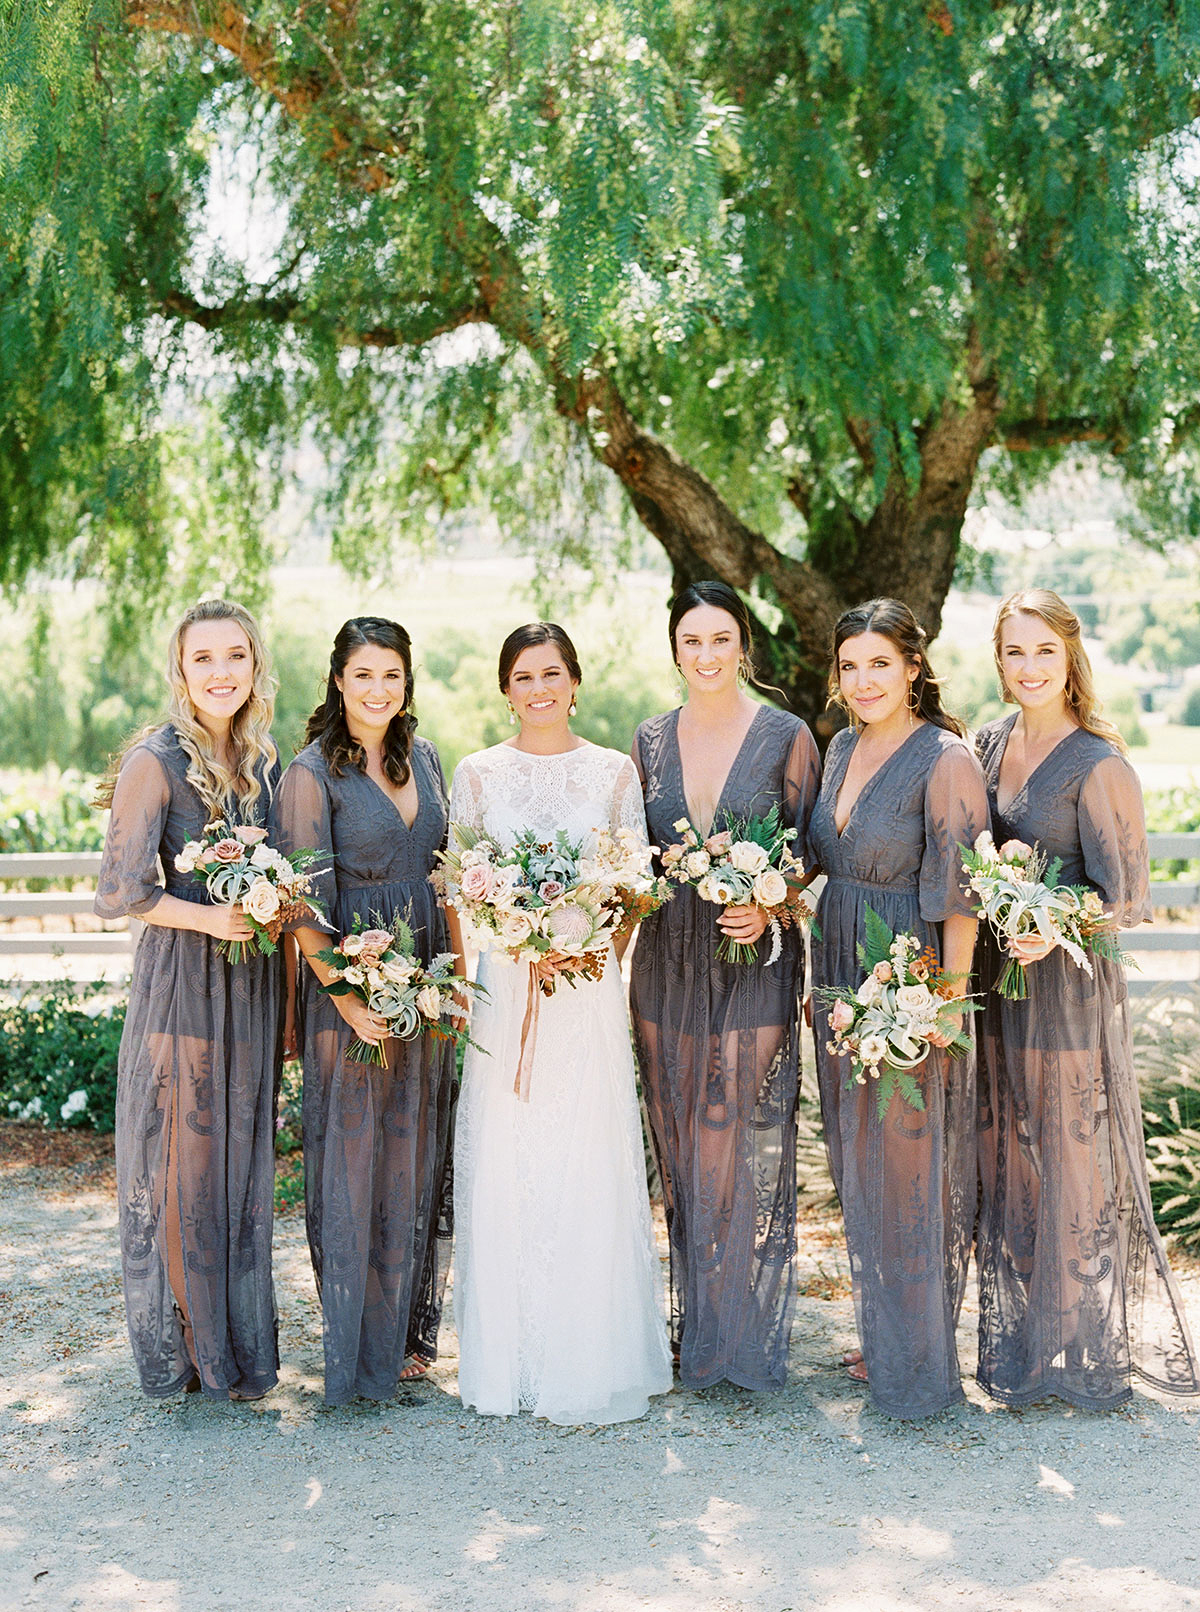 Can Bridesmaids Wear Long-Sleeved Dresses for a Summer Wedding?